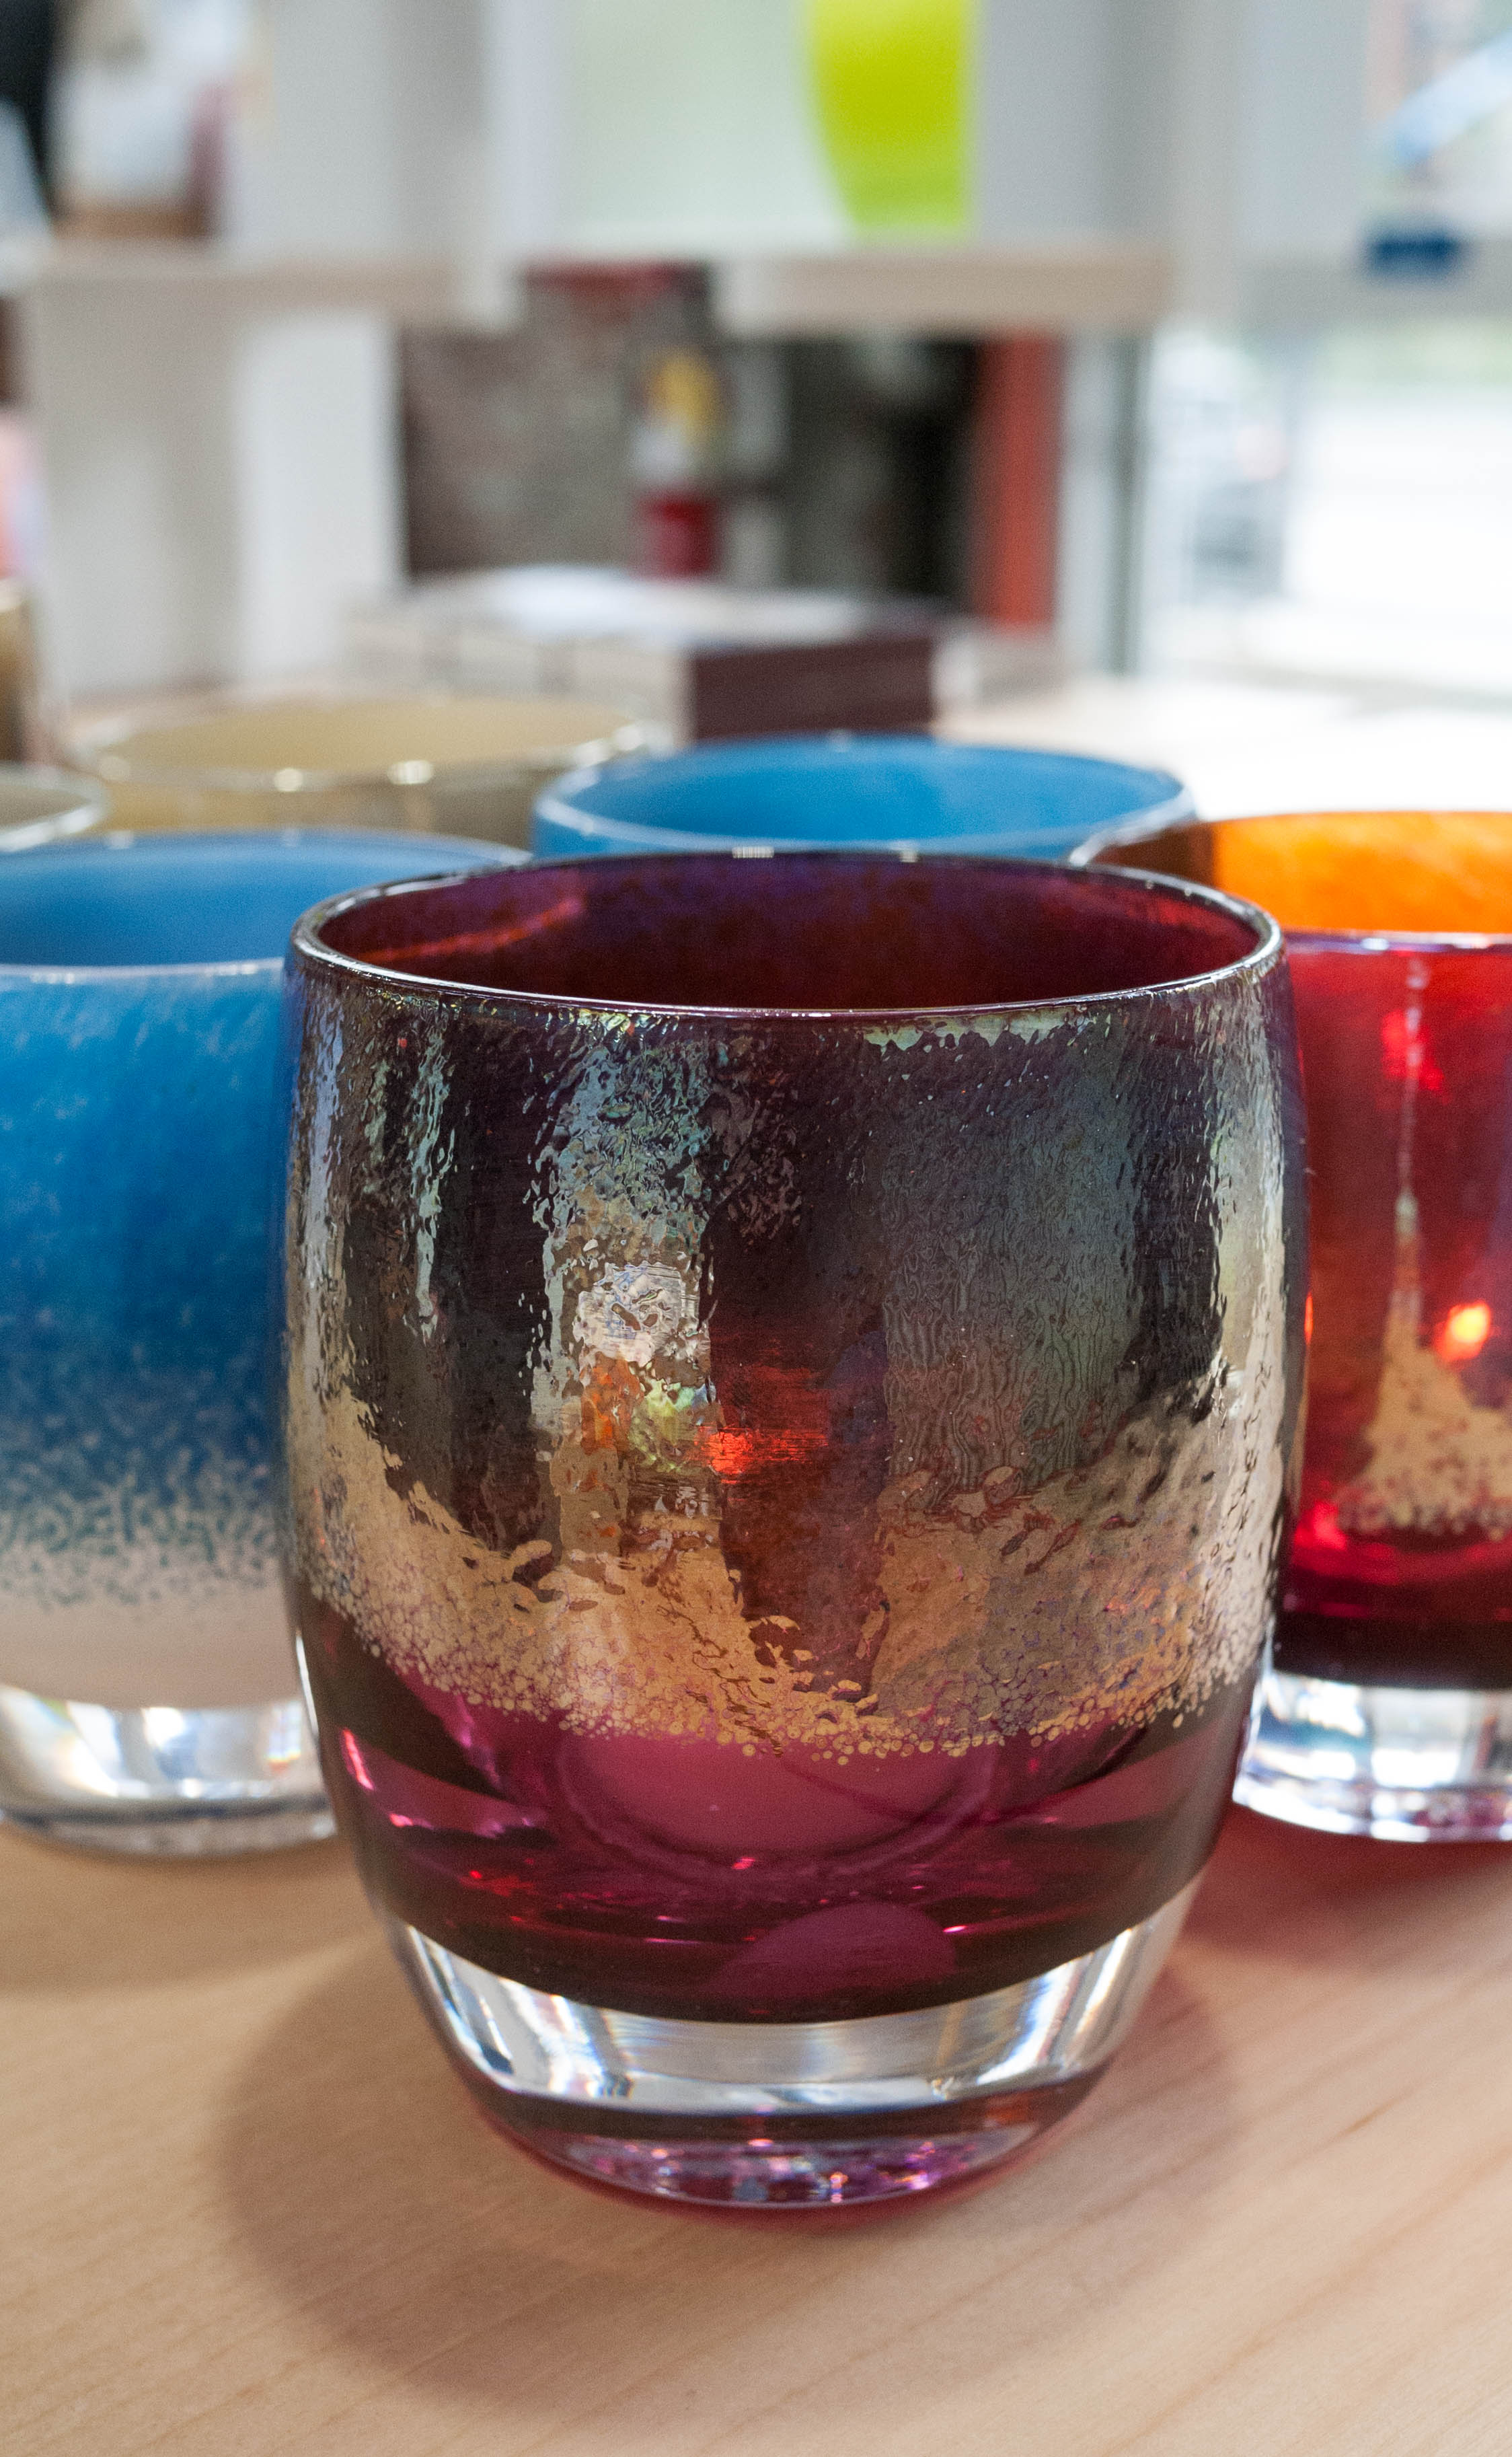 Check out this beauty! Each glassybaby is named and comes with a special story to explain how it came into the world! This one's name? DIVA. Fitting, don't you think?